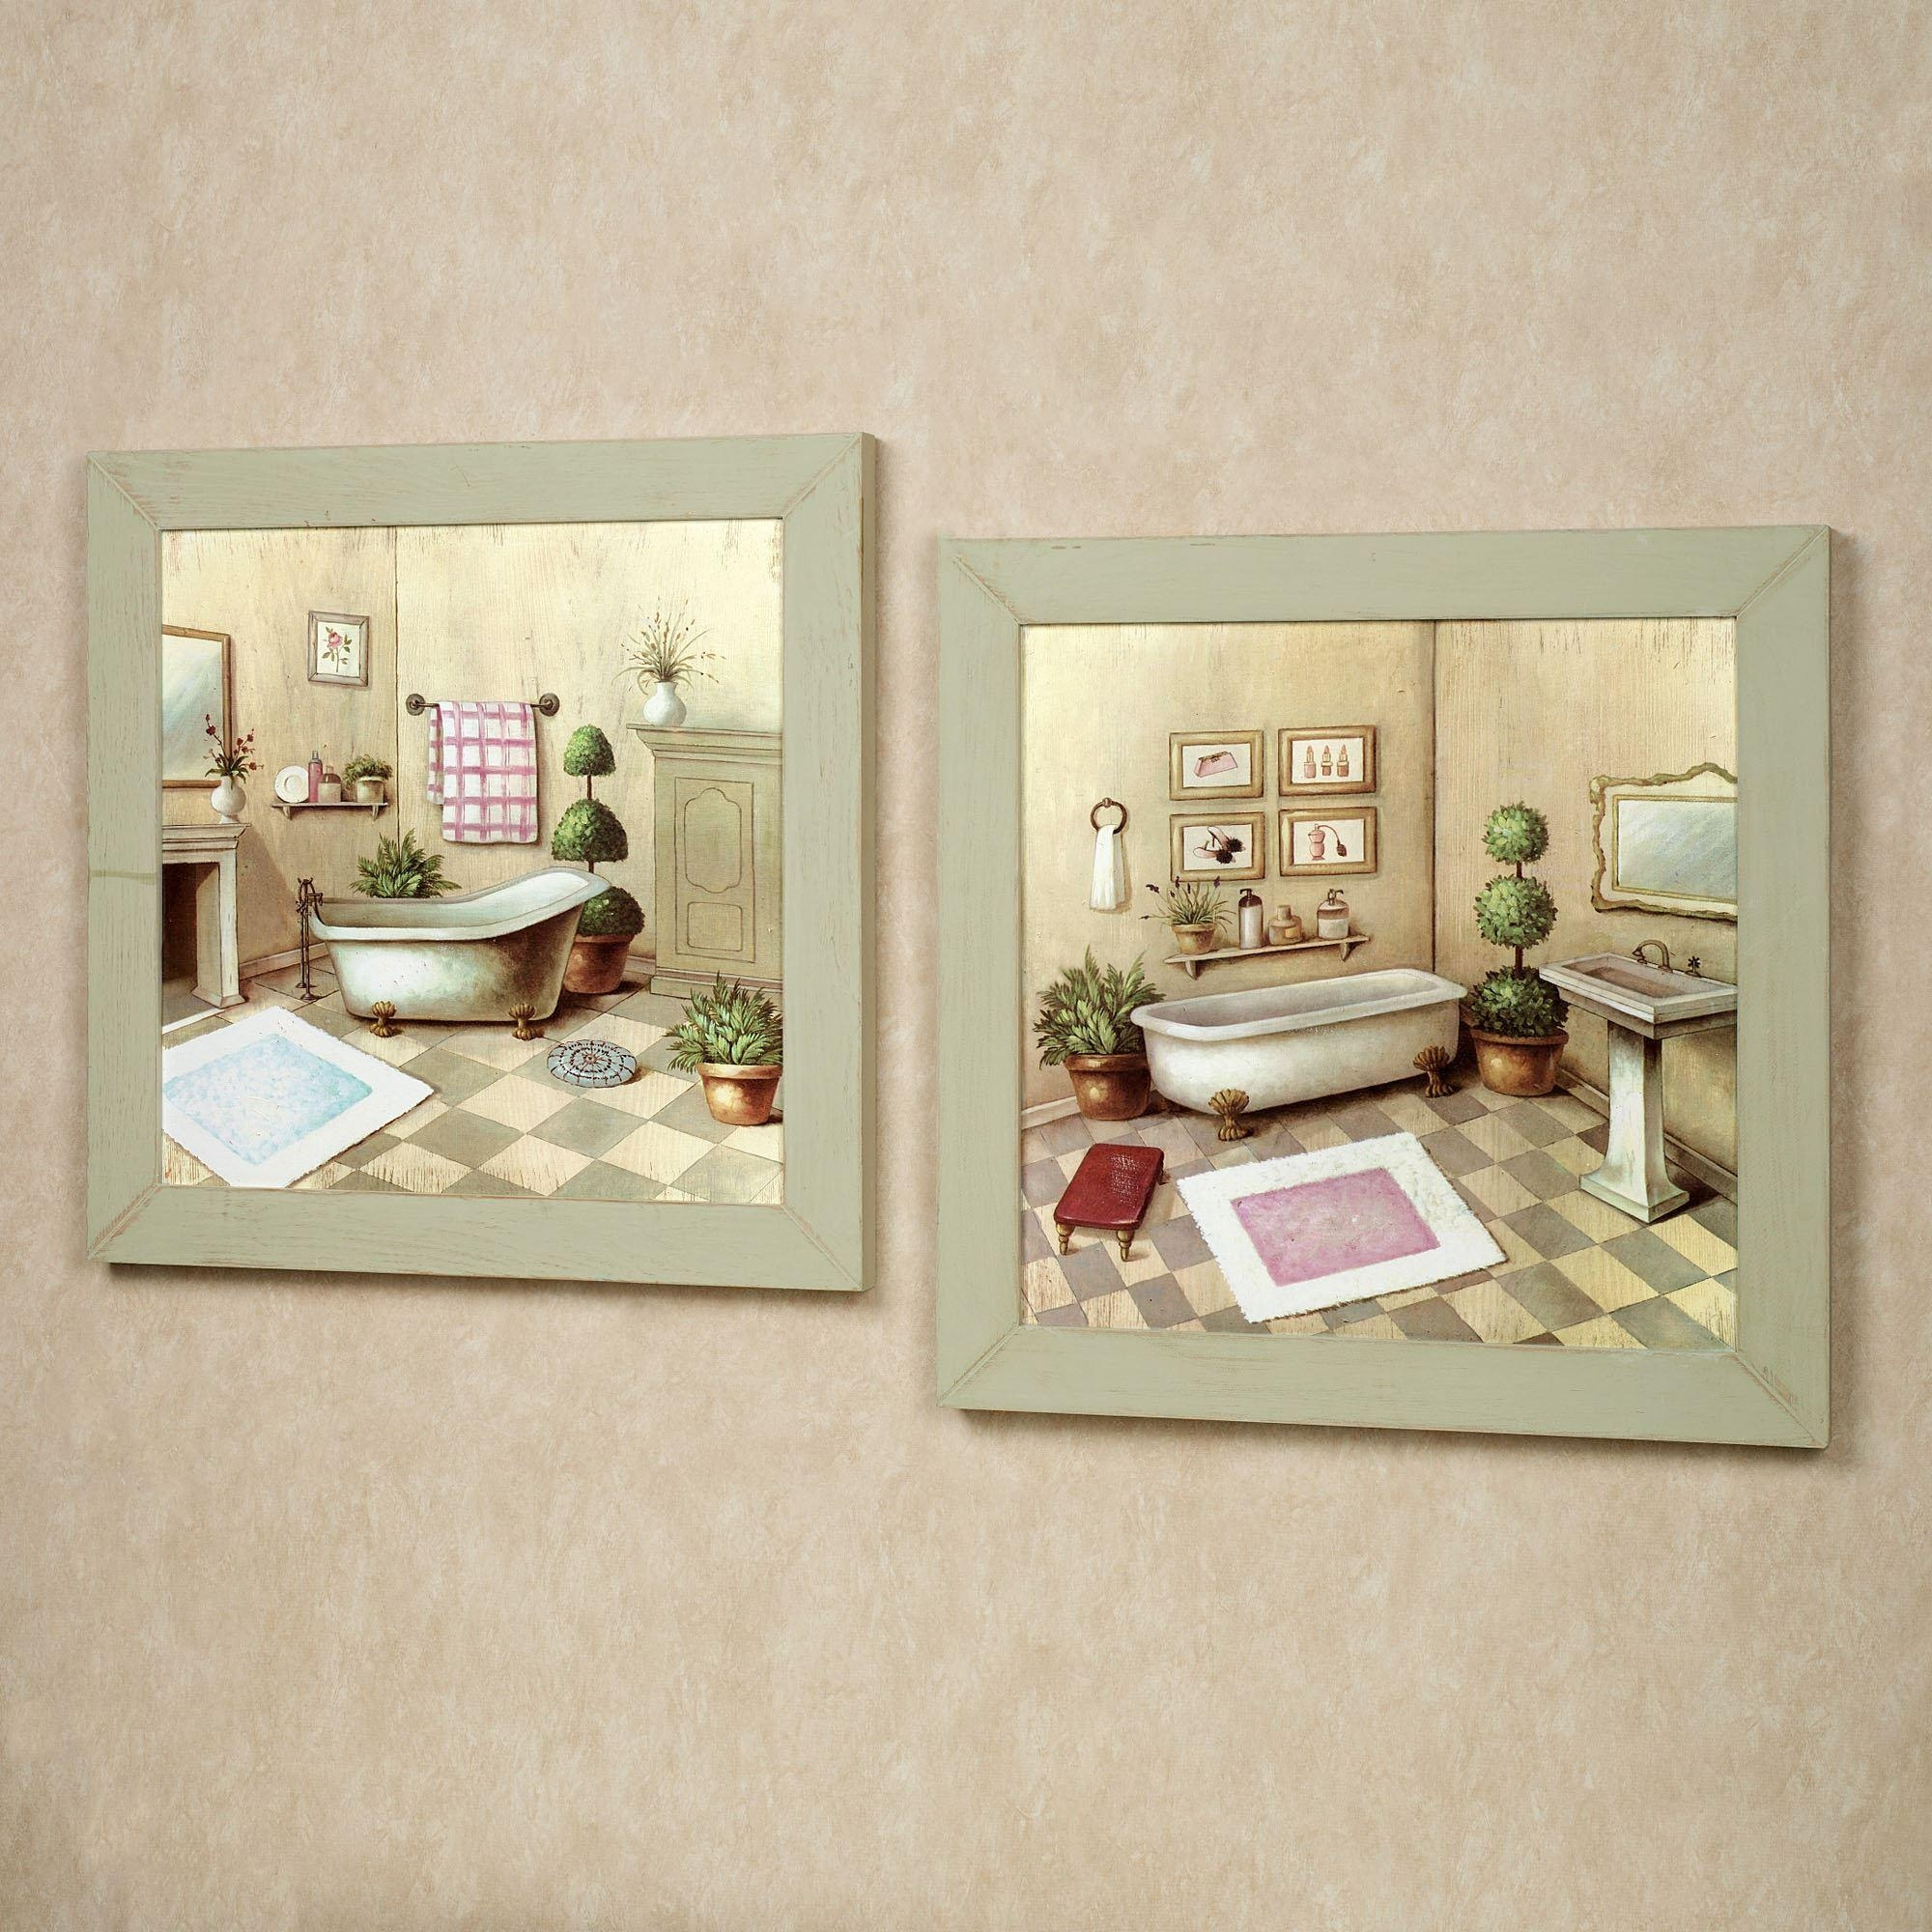 Framed Art For Bathroom, Framed Wall Art Decor For Bathroom Hobby With Wall Art For The Bathroom (Image 12 of 20)